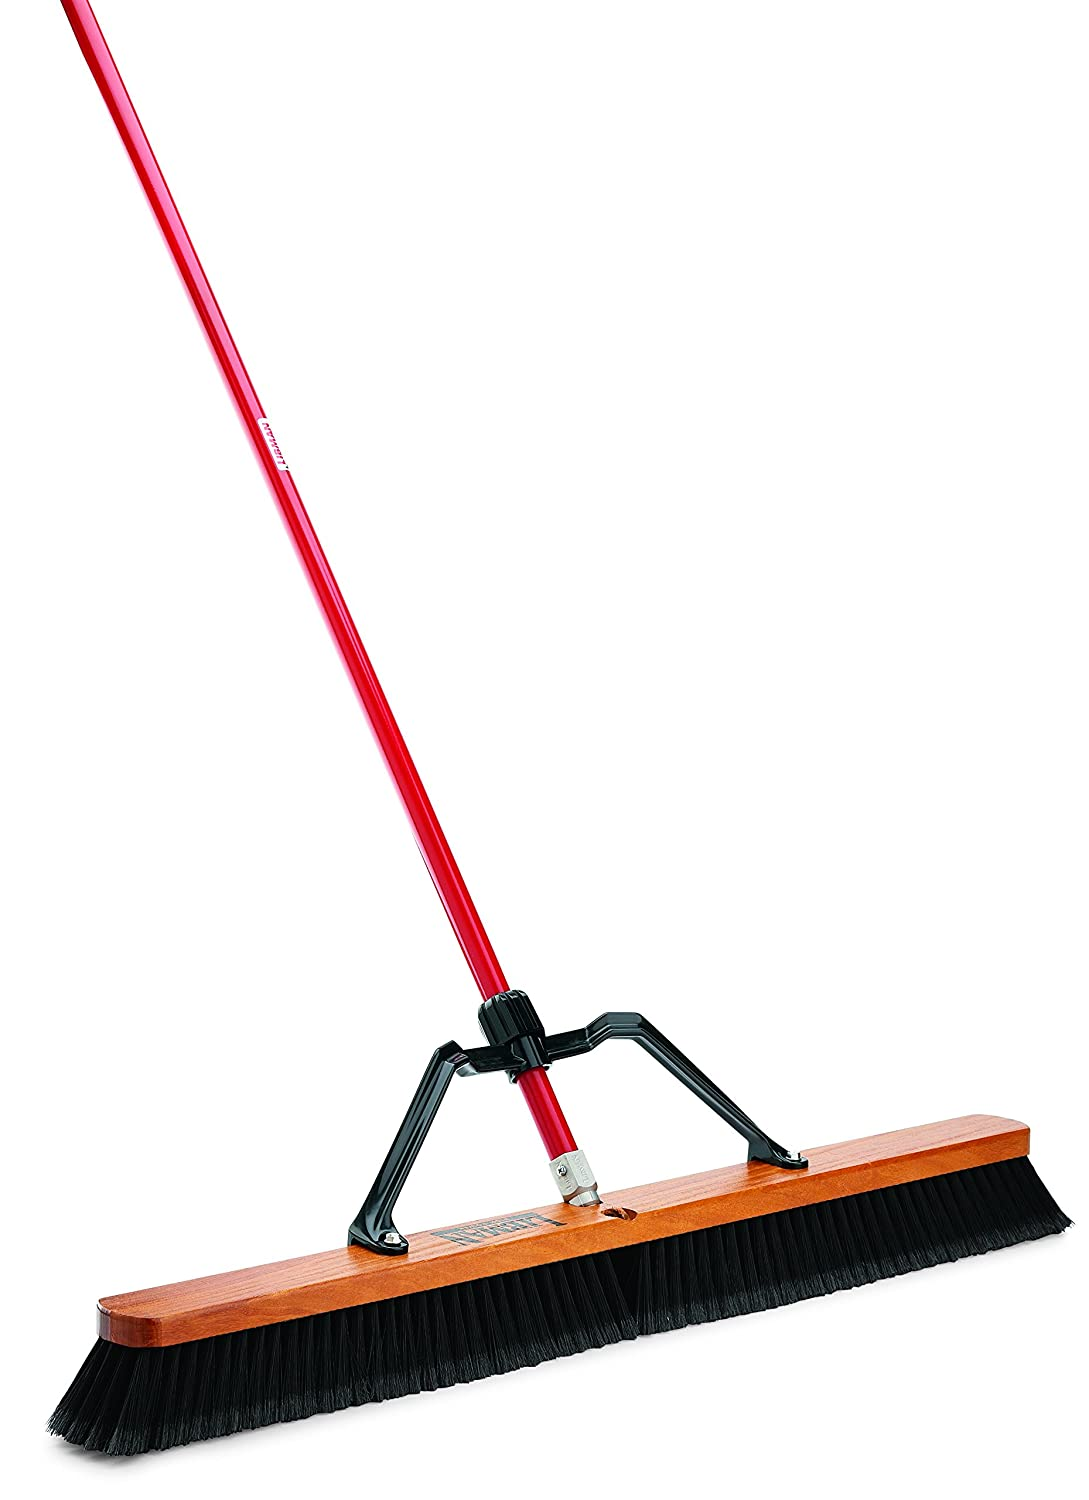 amazon com libman commercial 850 smooth surface heavy duty push amazon com libman commercial 850 smooth surface heavy duty push broom 65